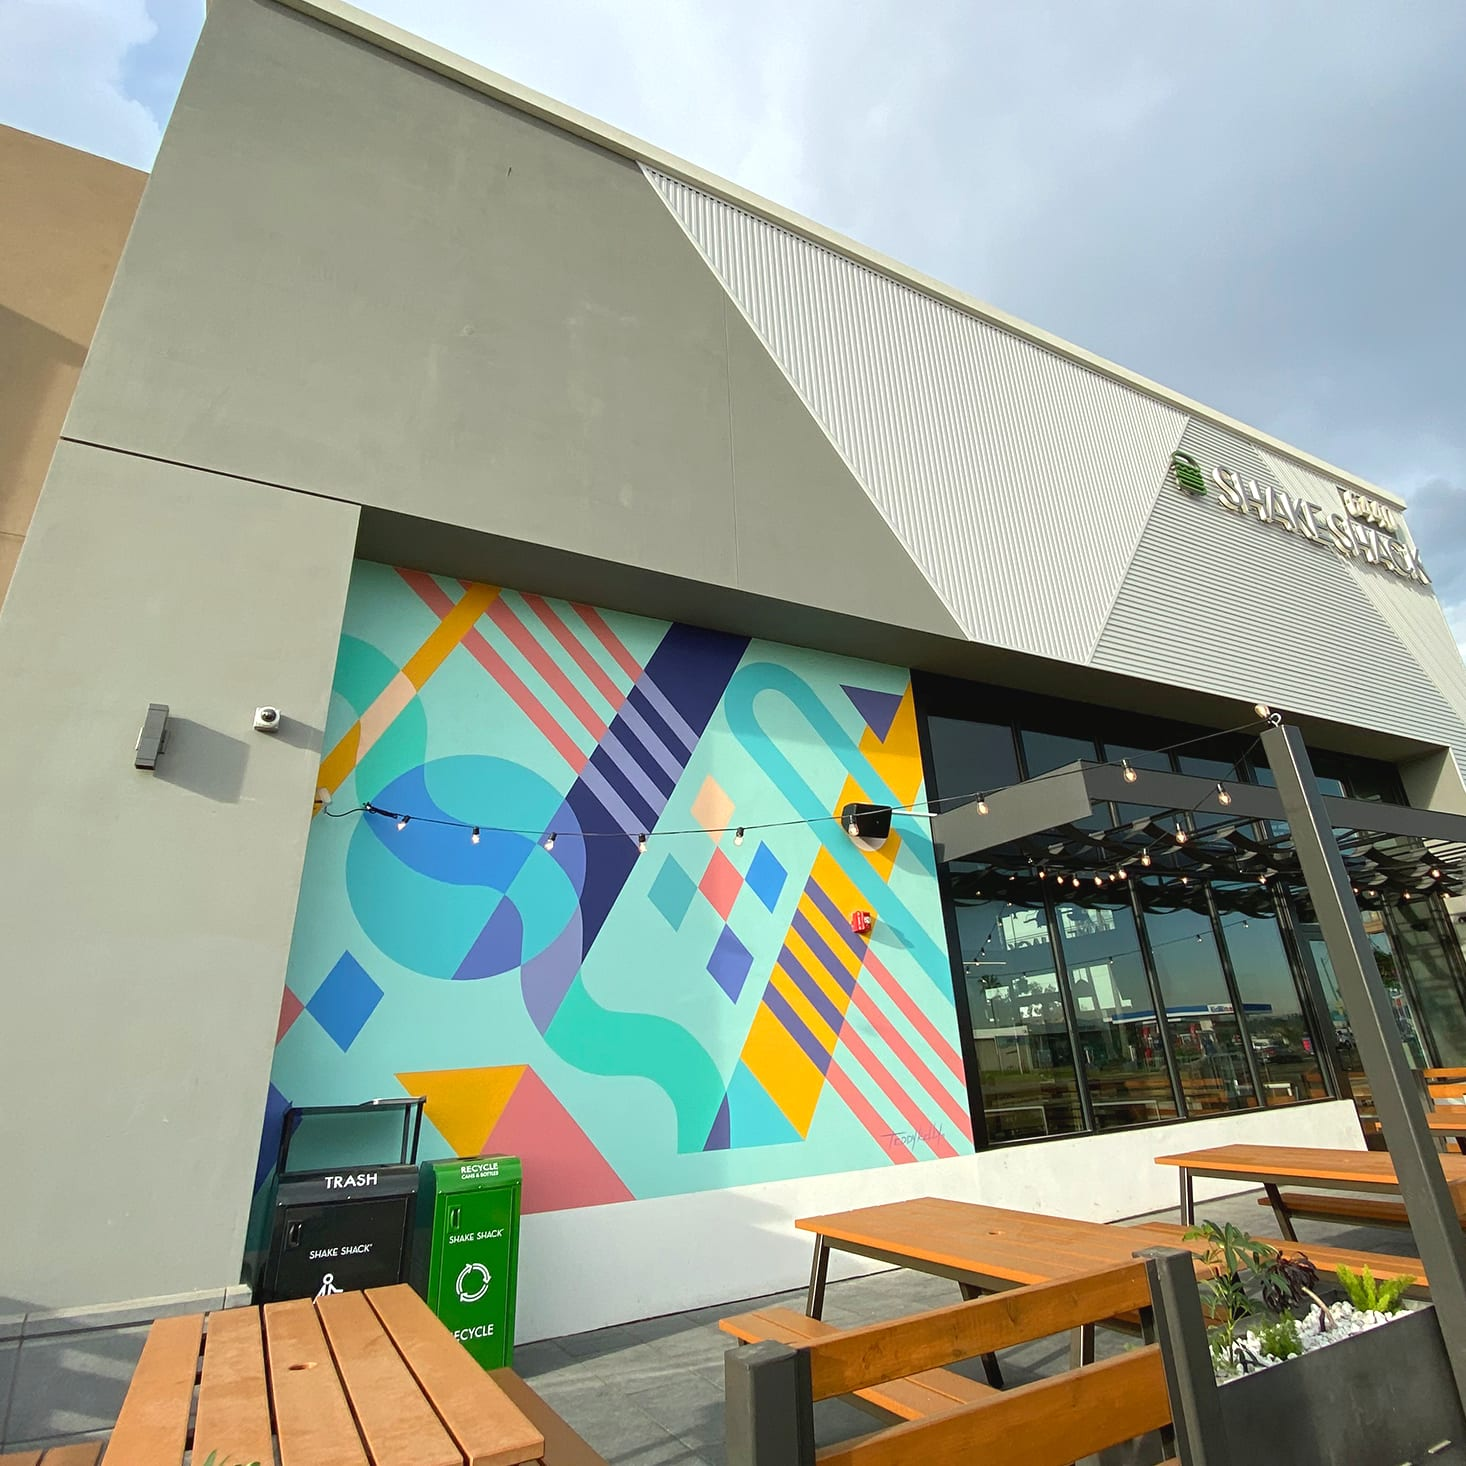 exterior mural on a shake shack restaurant in long beach california with bright colors and abstract shapes